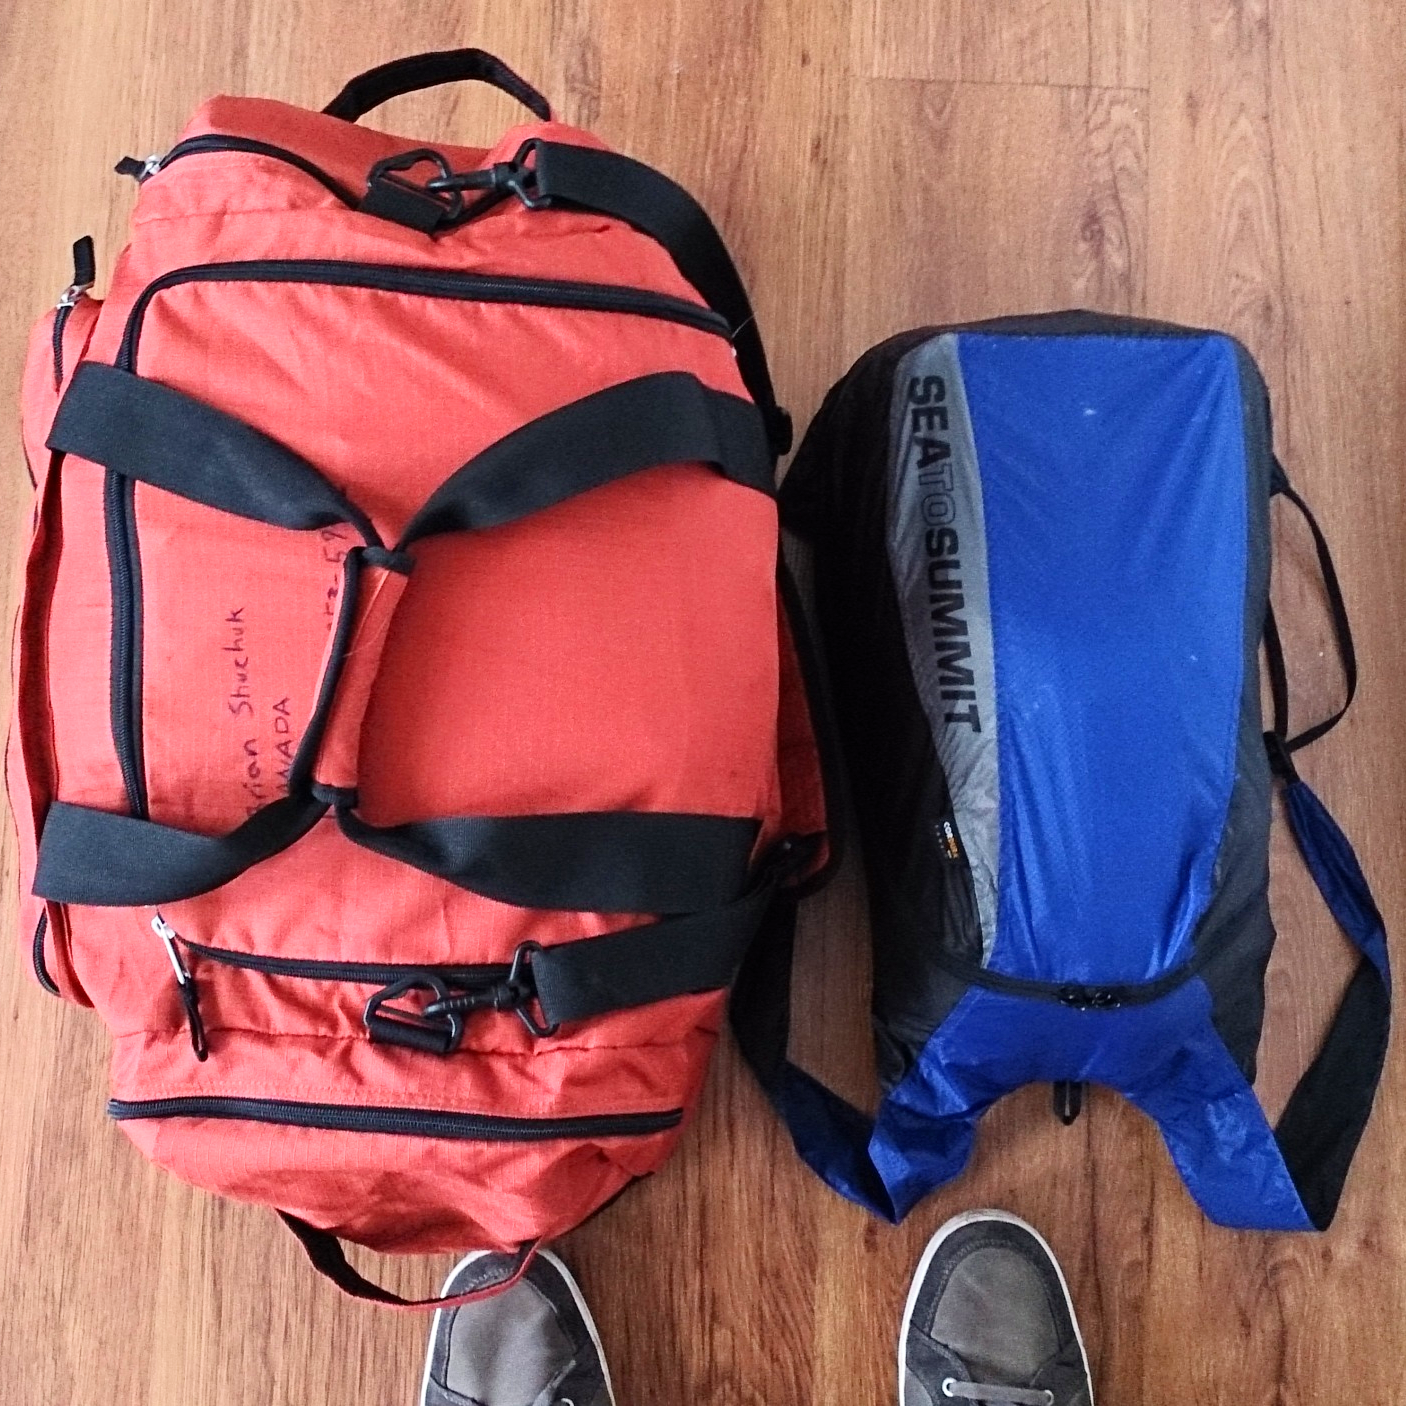 Managed to fit everything in these, then on my bicycle in 2 panniers